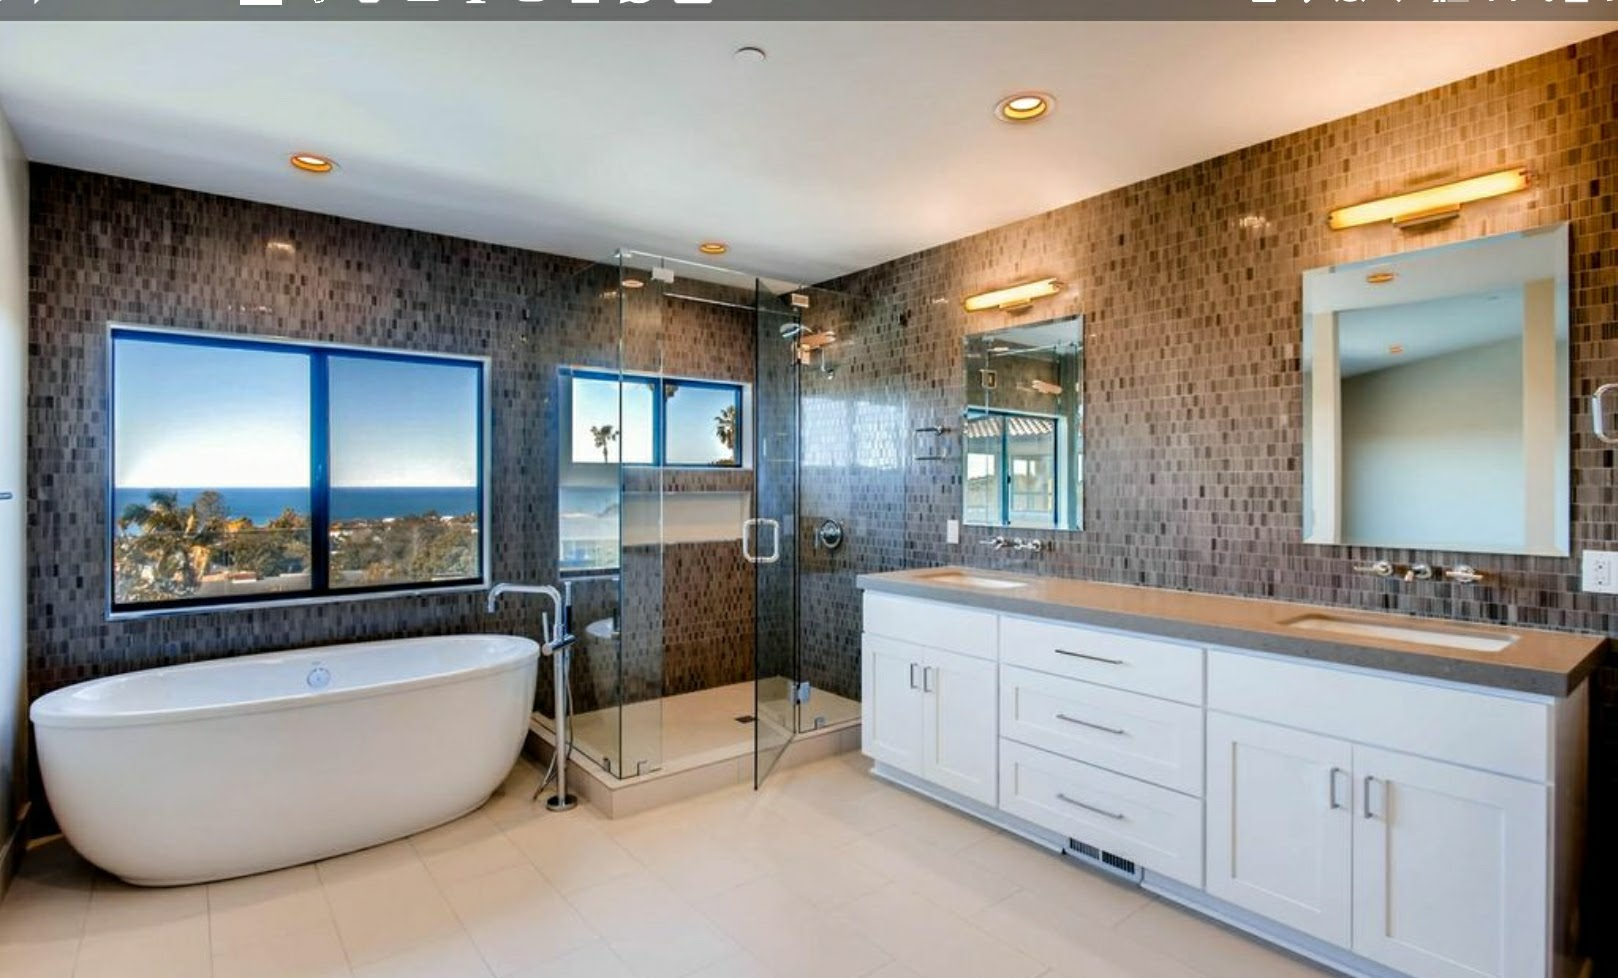 Discount Kitchen Cabinets San Diego Bathroom Cabinets And Remodeling Bathroom Vanities In San